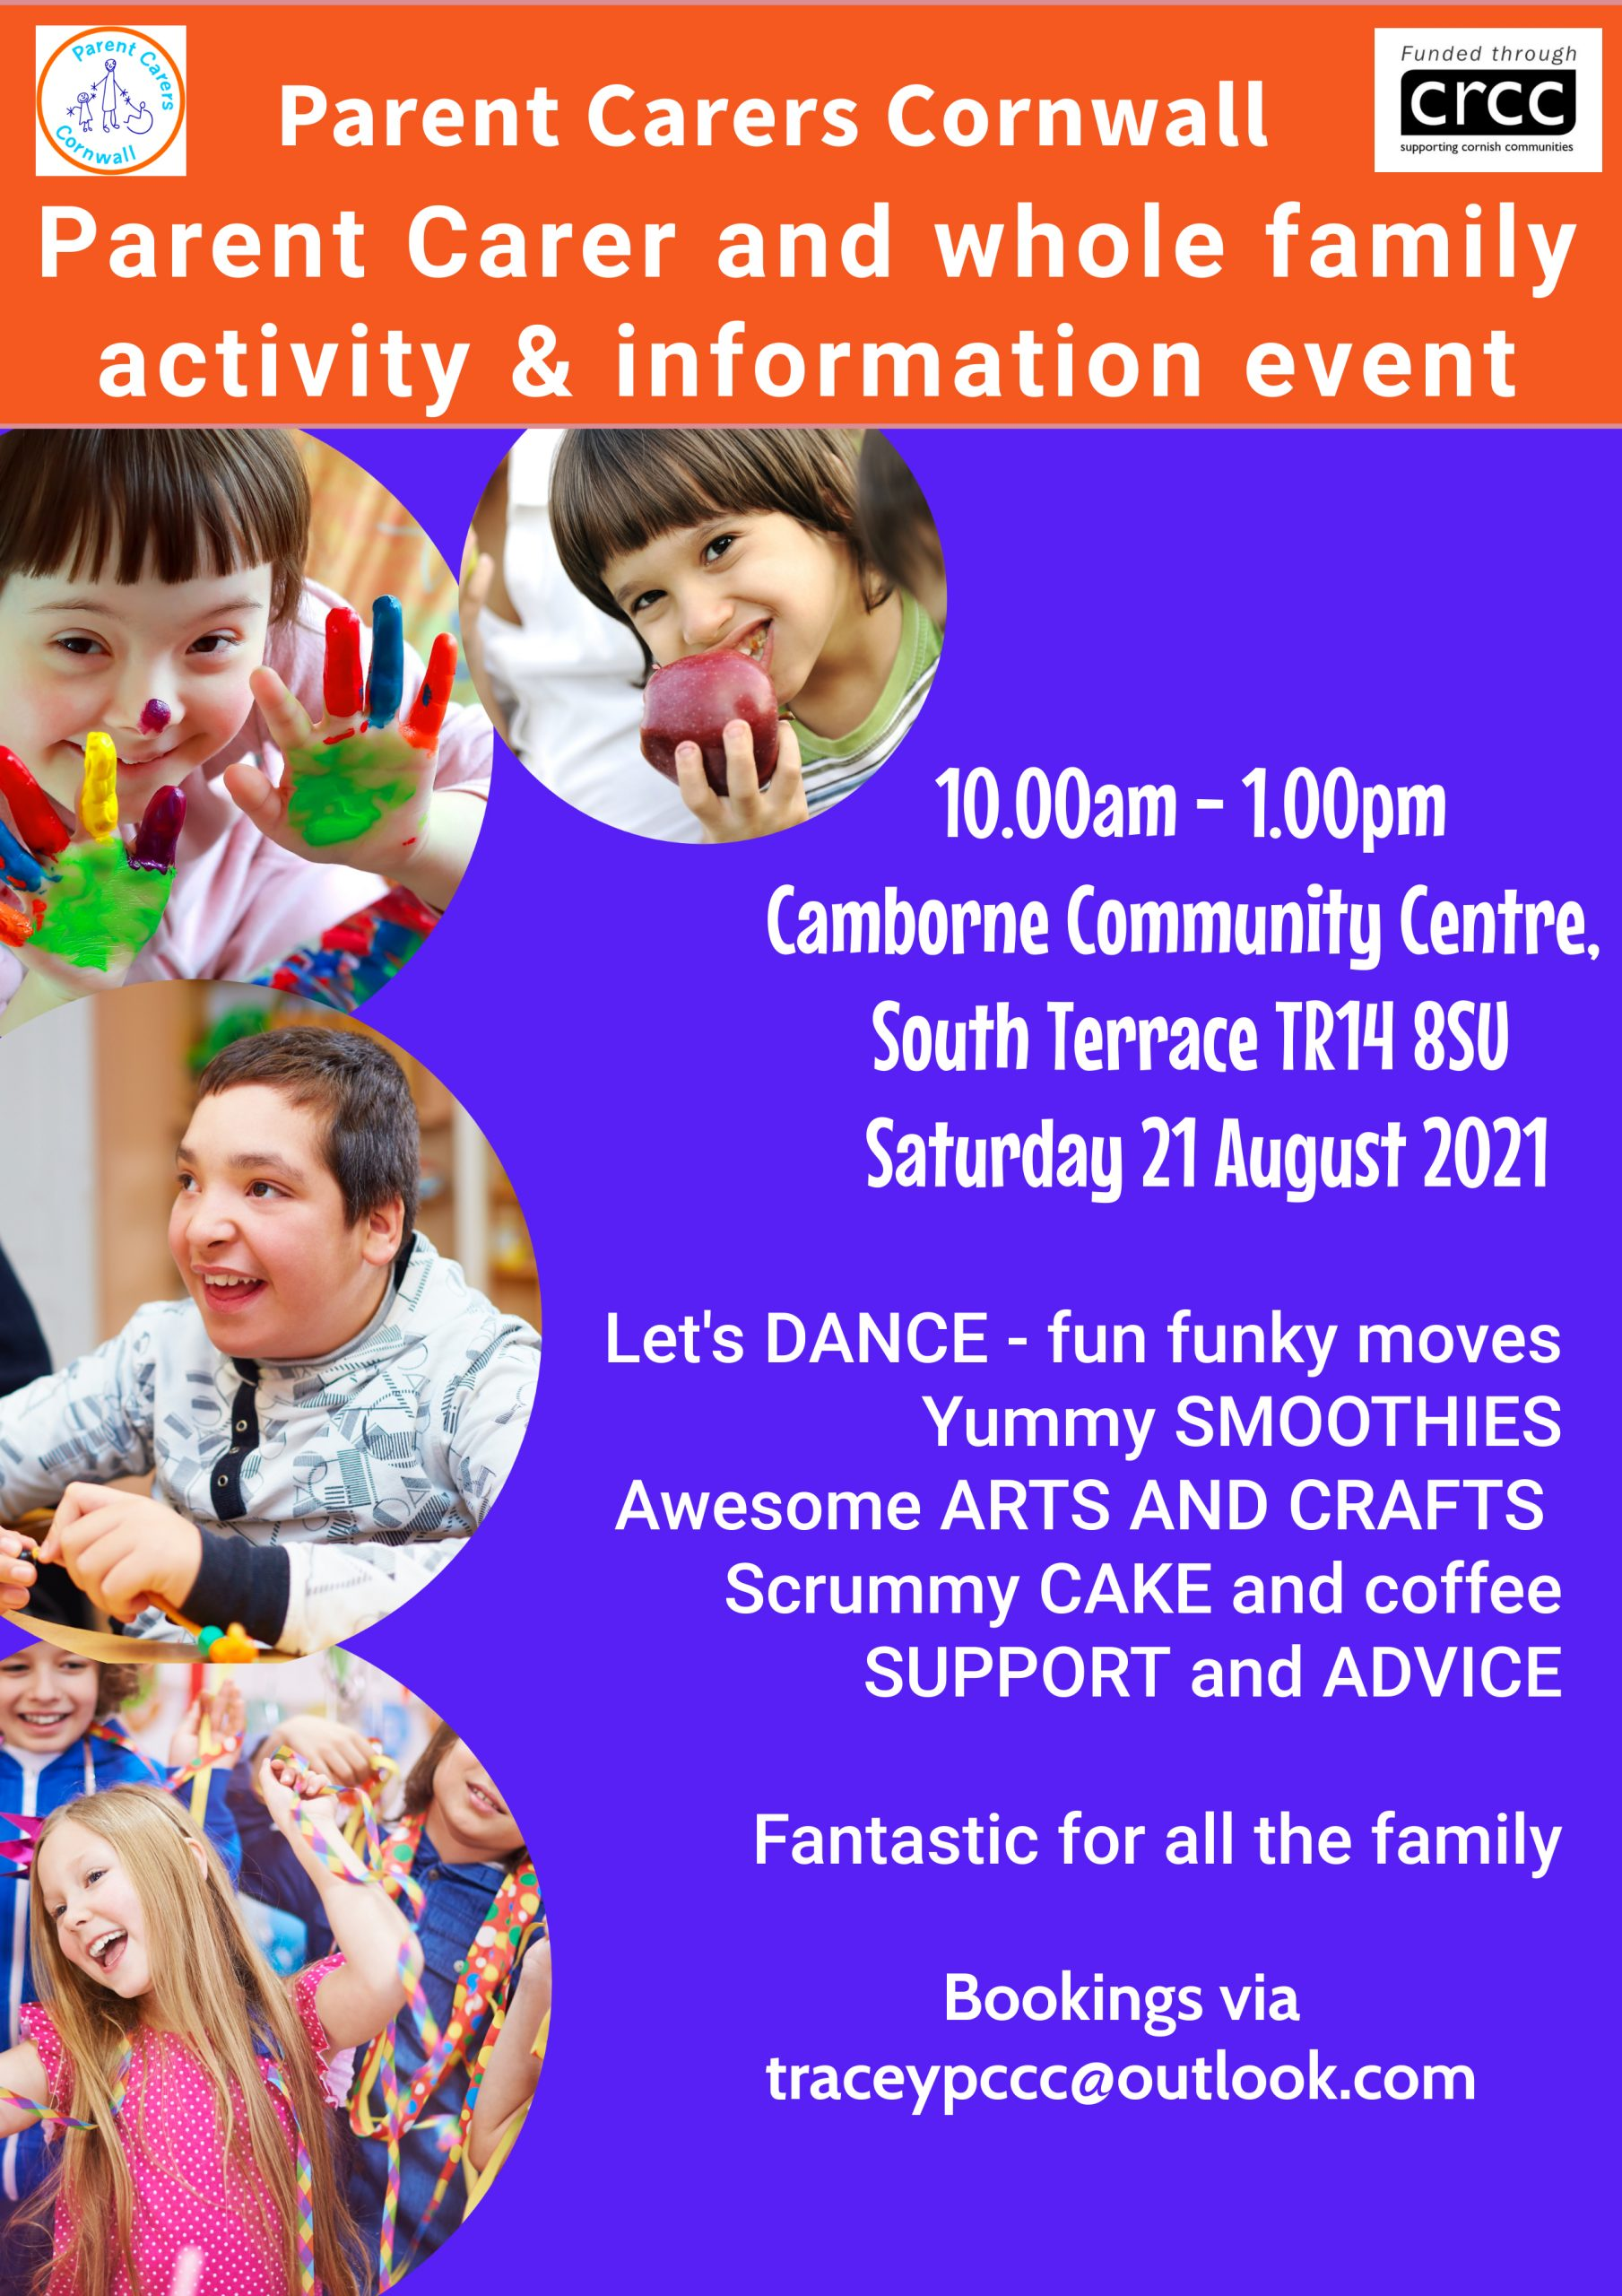 PCC Together for Families Activity – Camborne